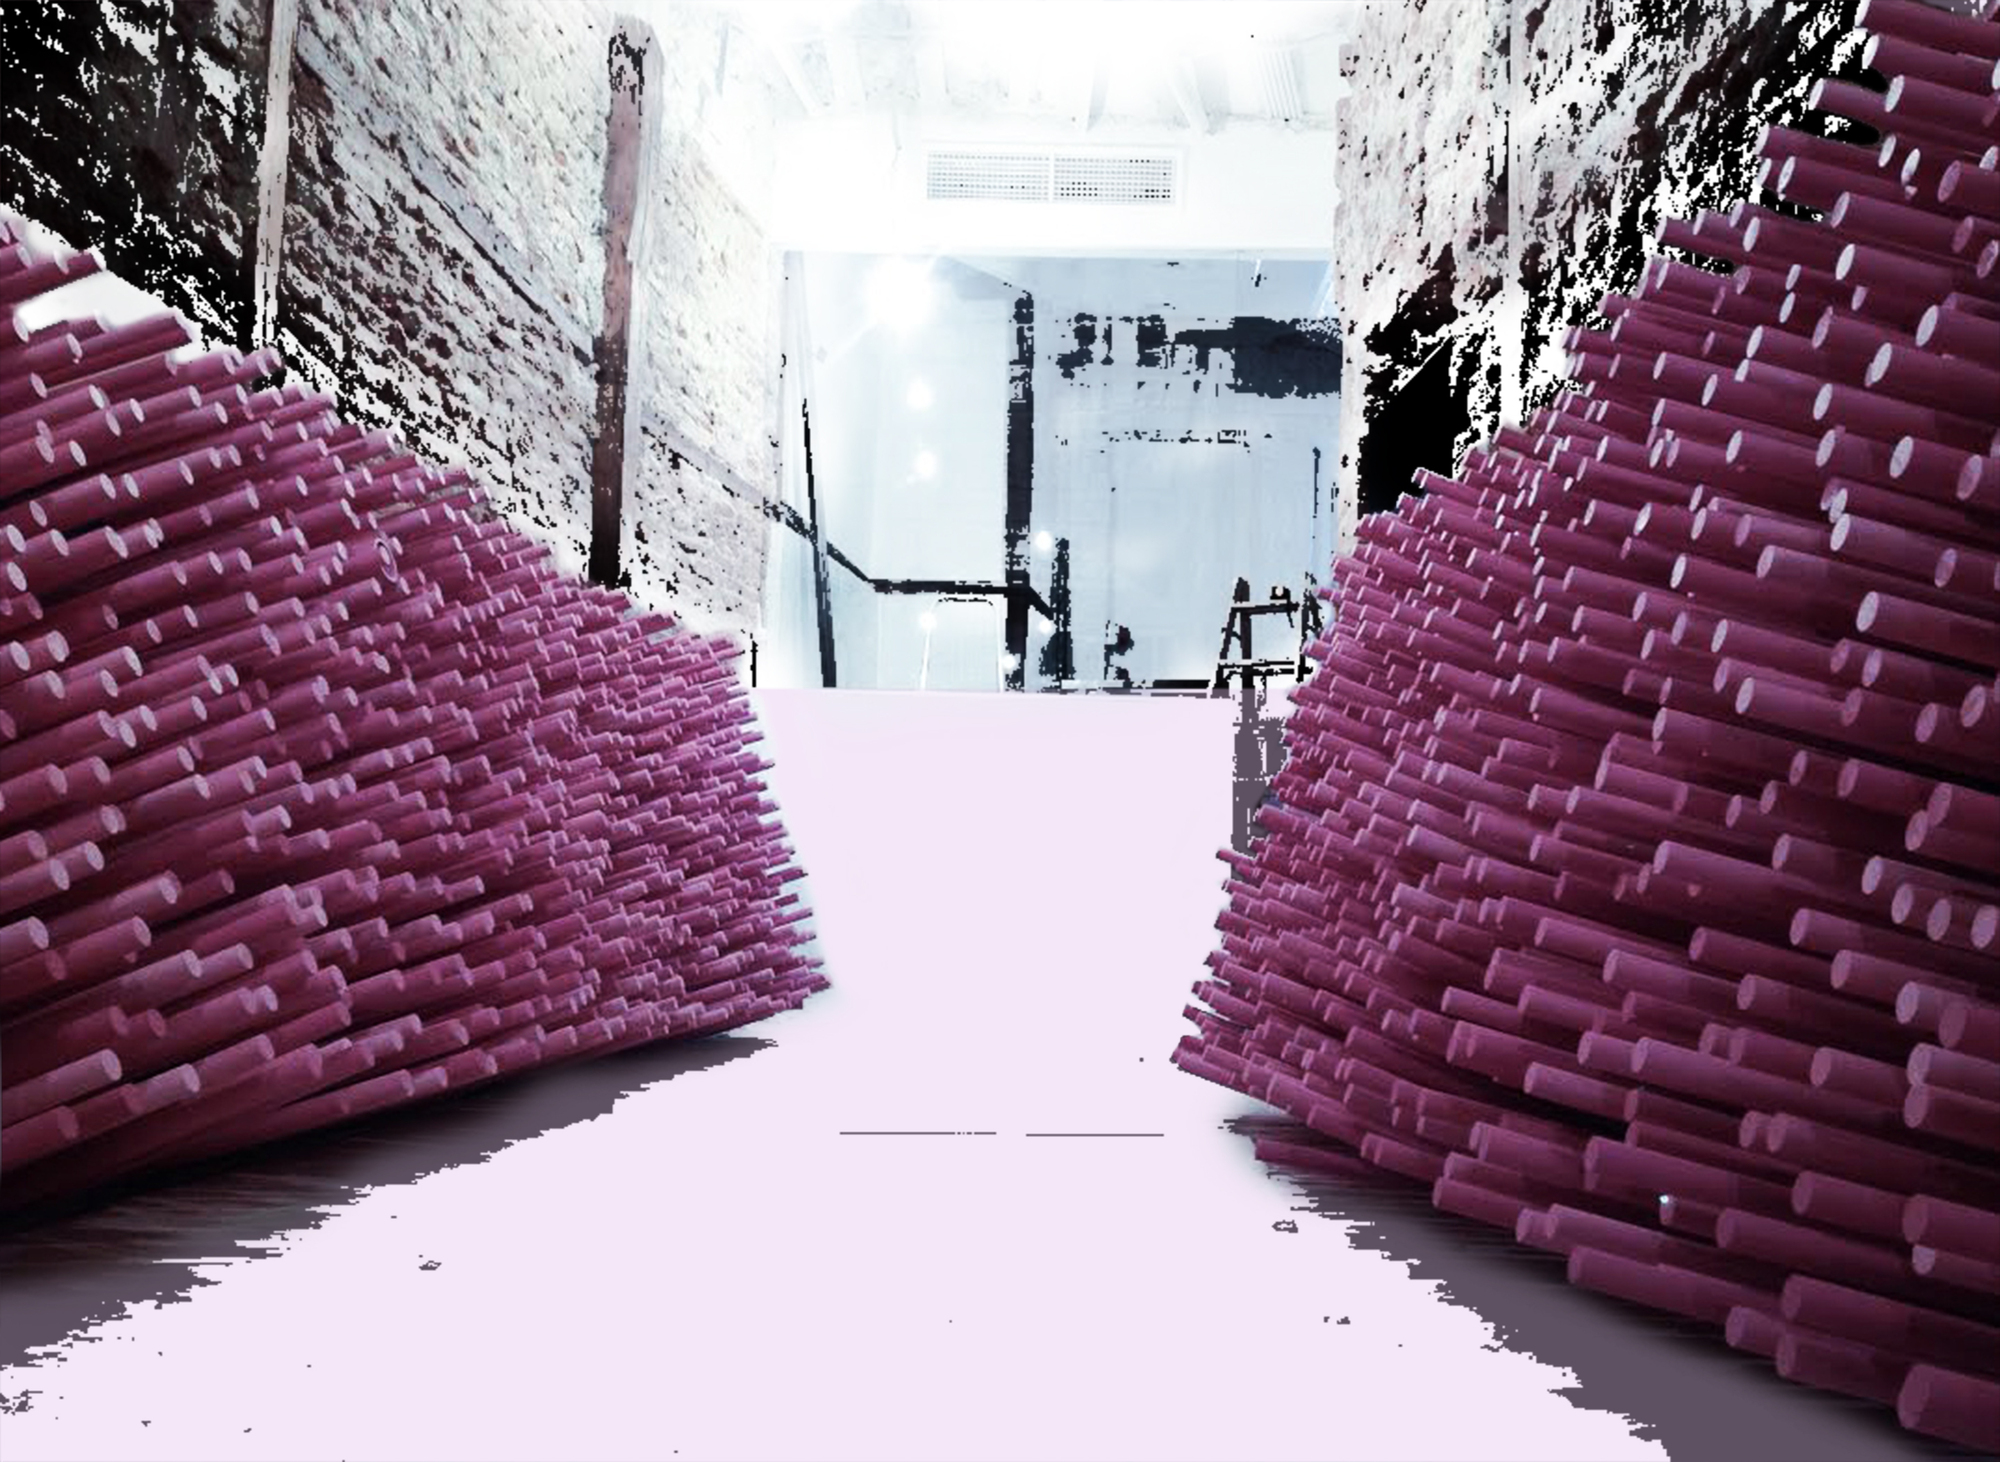 Gallery of 12 000 pink painted wooden sticks ideo for Arquitectura prehistorica